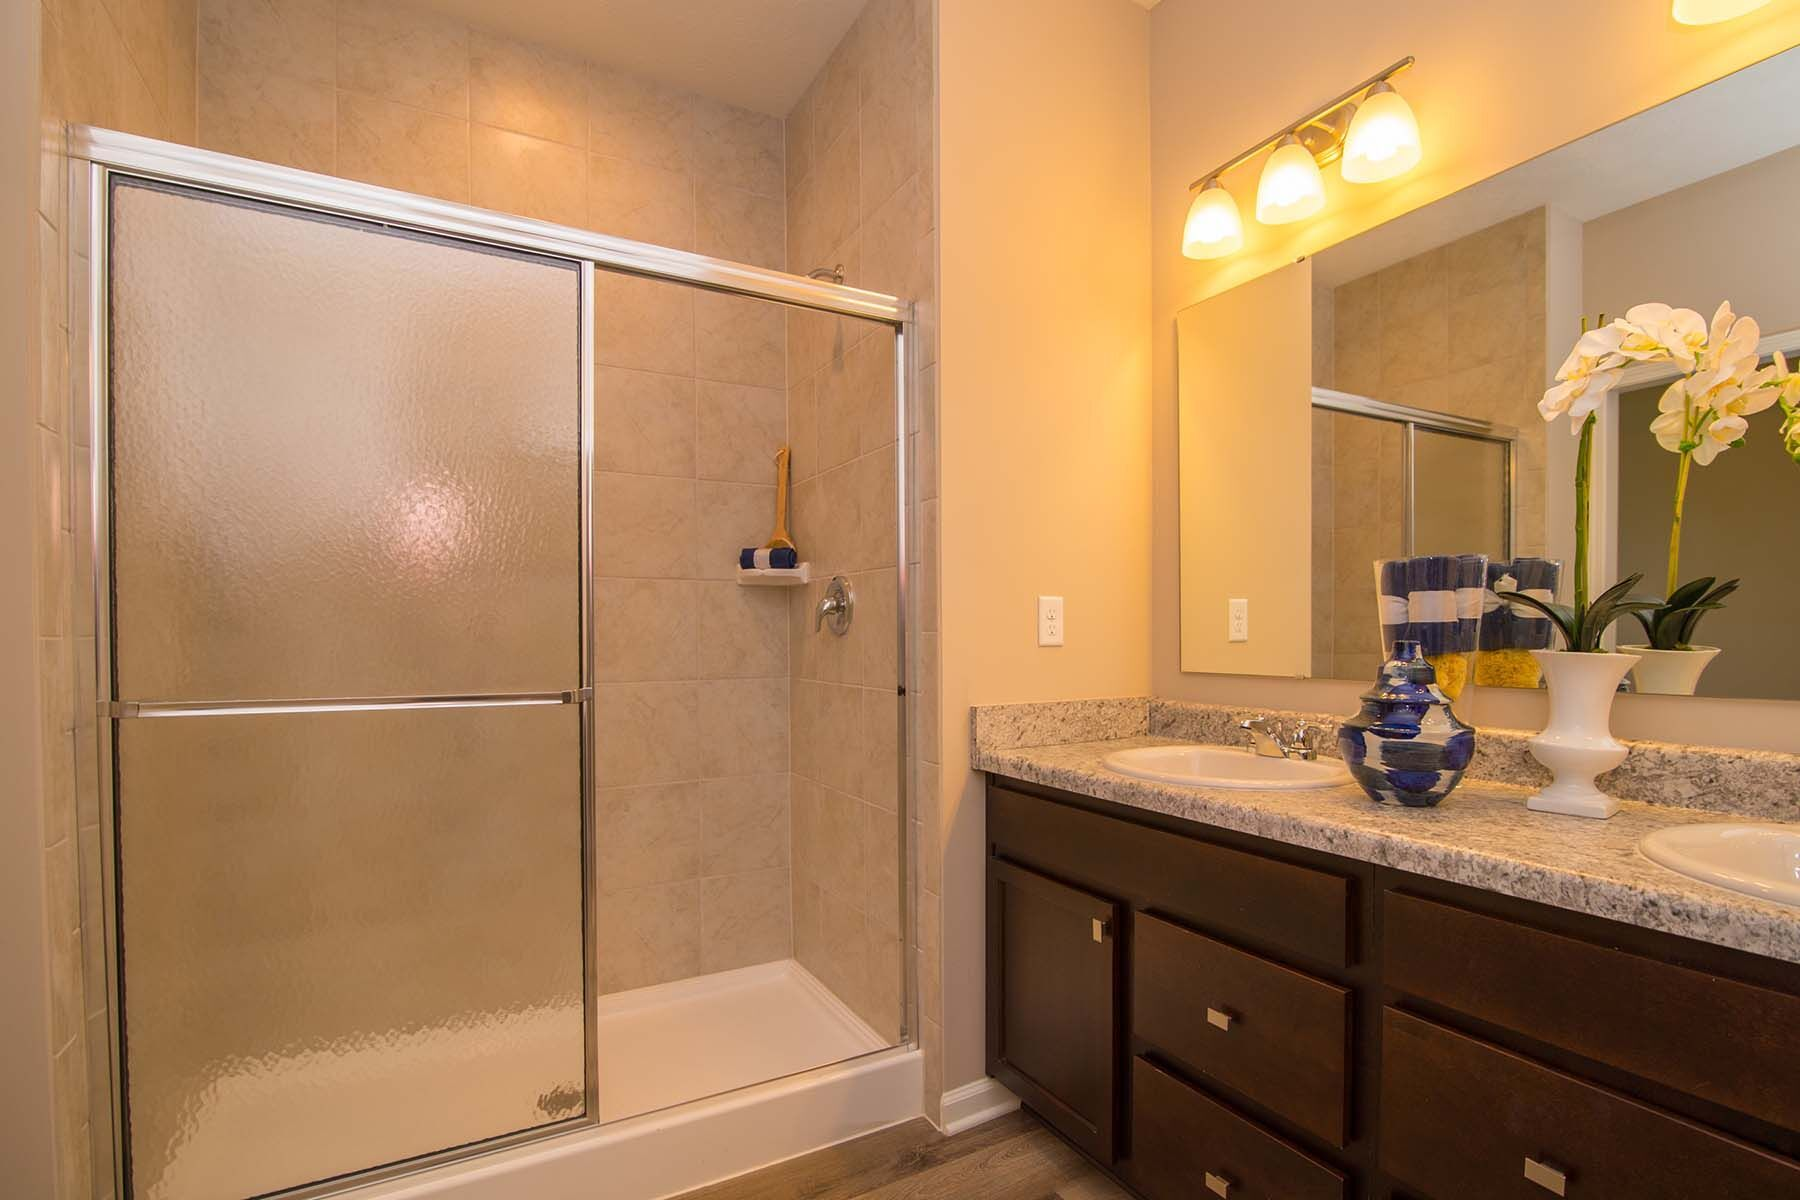 Bathroom featured in the Bella Vista By M/I Homes in Indianapolis, IN